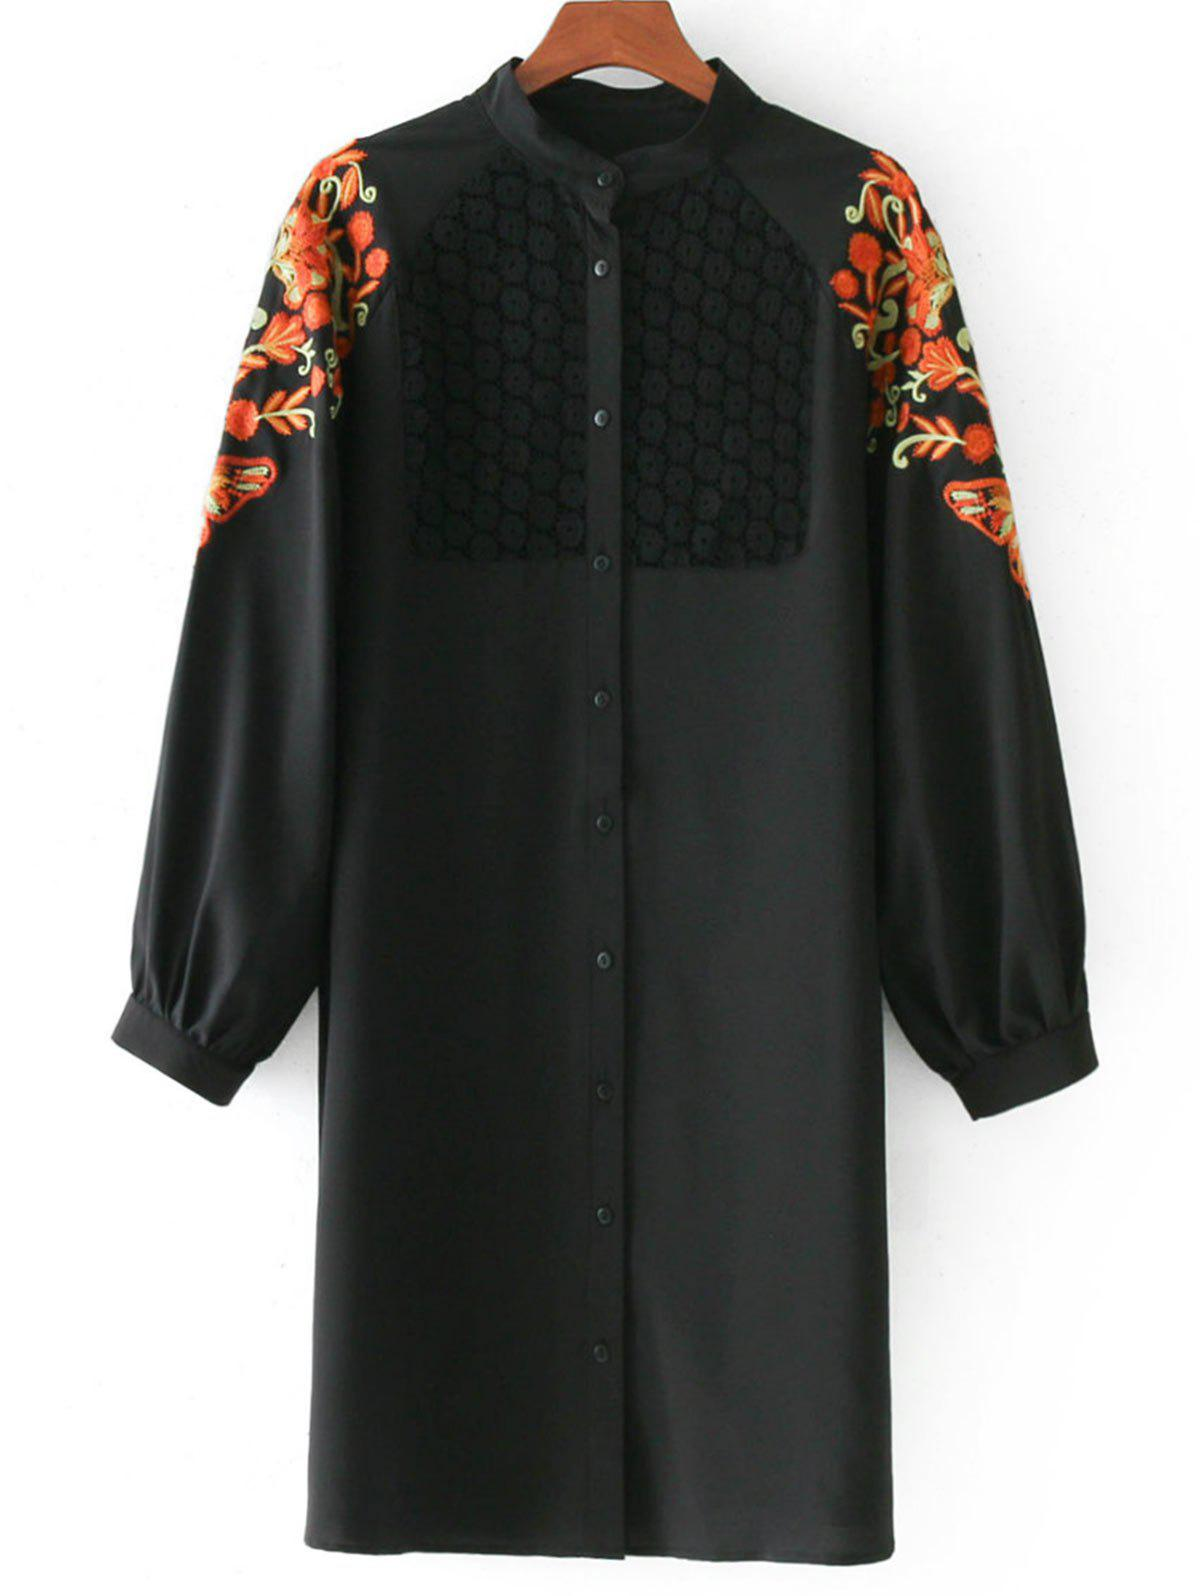 Blumige Patches Longline Bluse